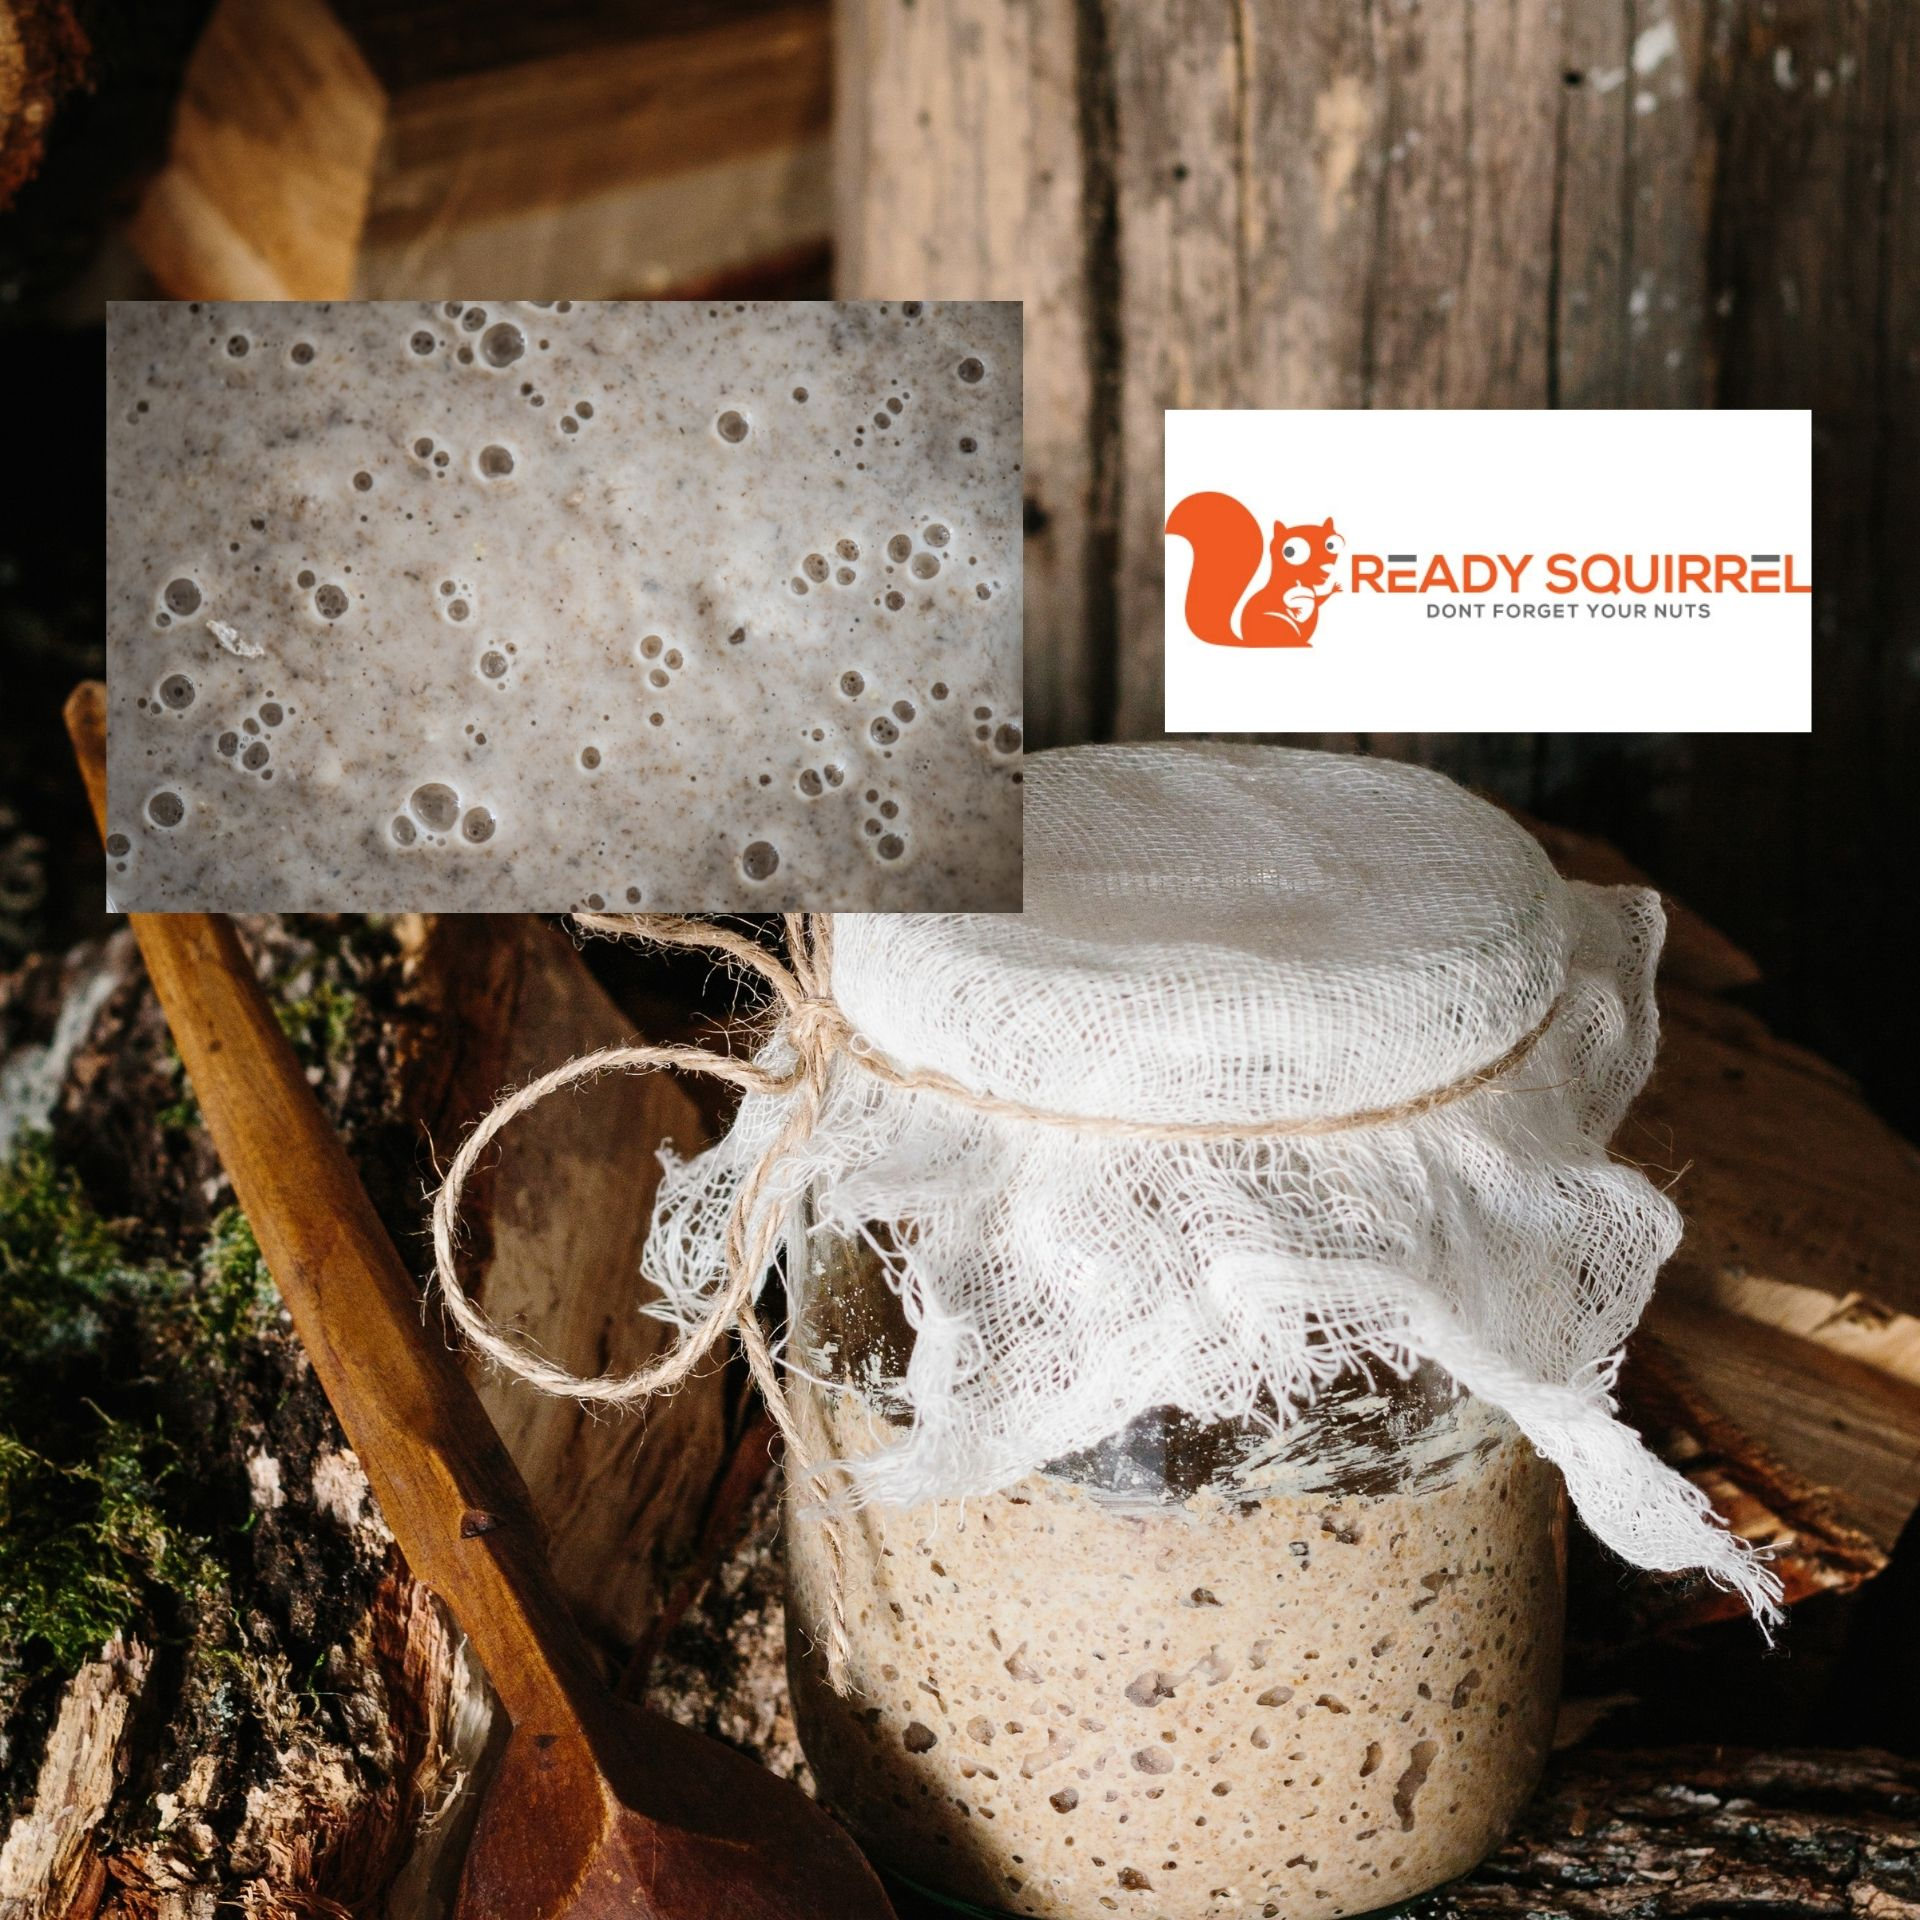 Emergency Yeast: How To Make Bread Yeast From Just Flour & Water